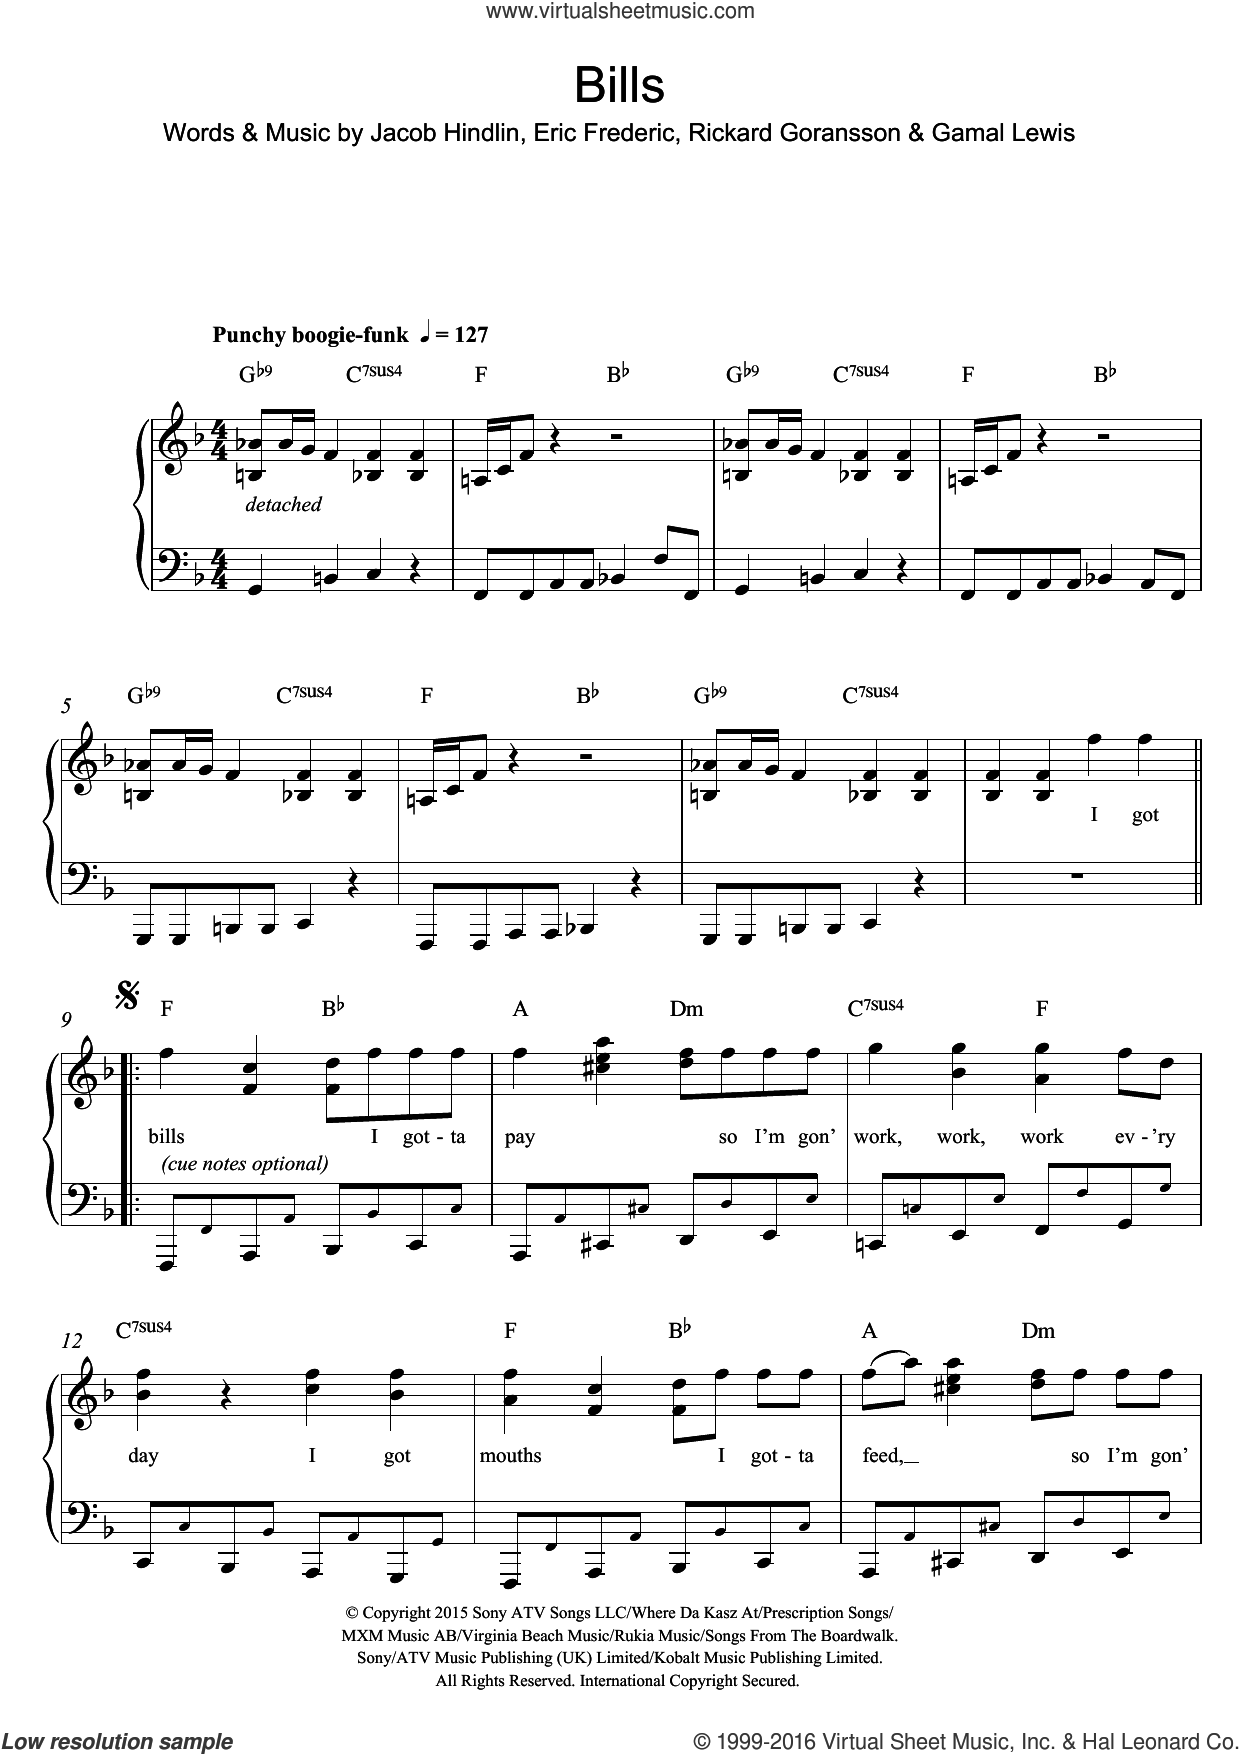 Bills, (easy) sheet music for piano solo by LunchMoney Lewis, Eric Frederic, Gamal Lewis, Jacob Hindlin and Rickard Goransson, easy skill level